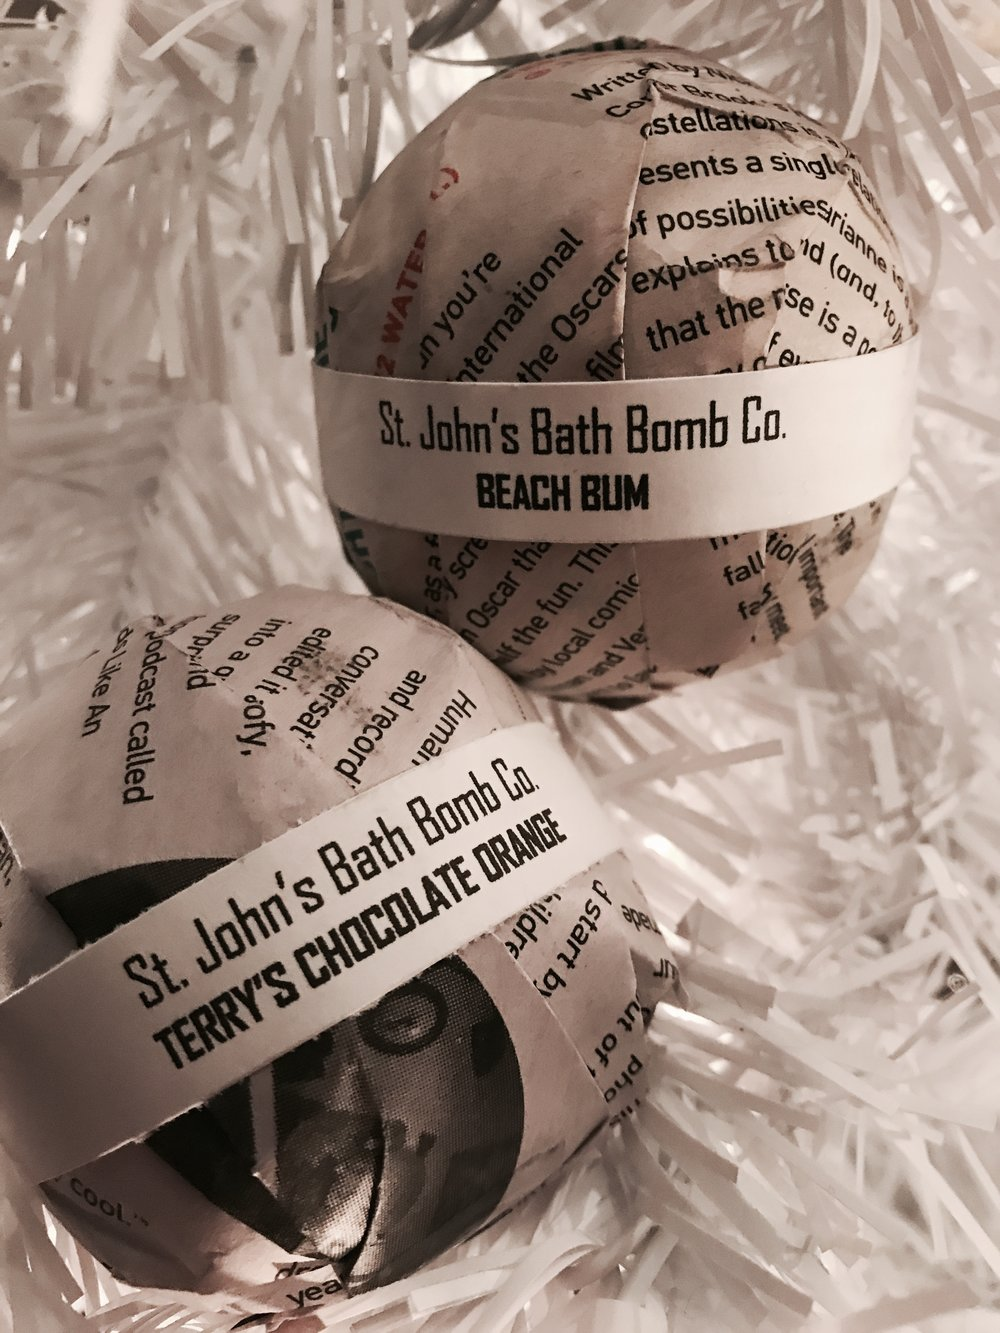 St. John's Bath Bomb Co. - Available at Whink